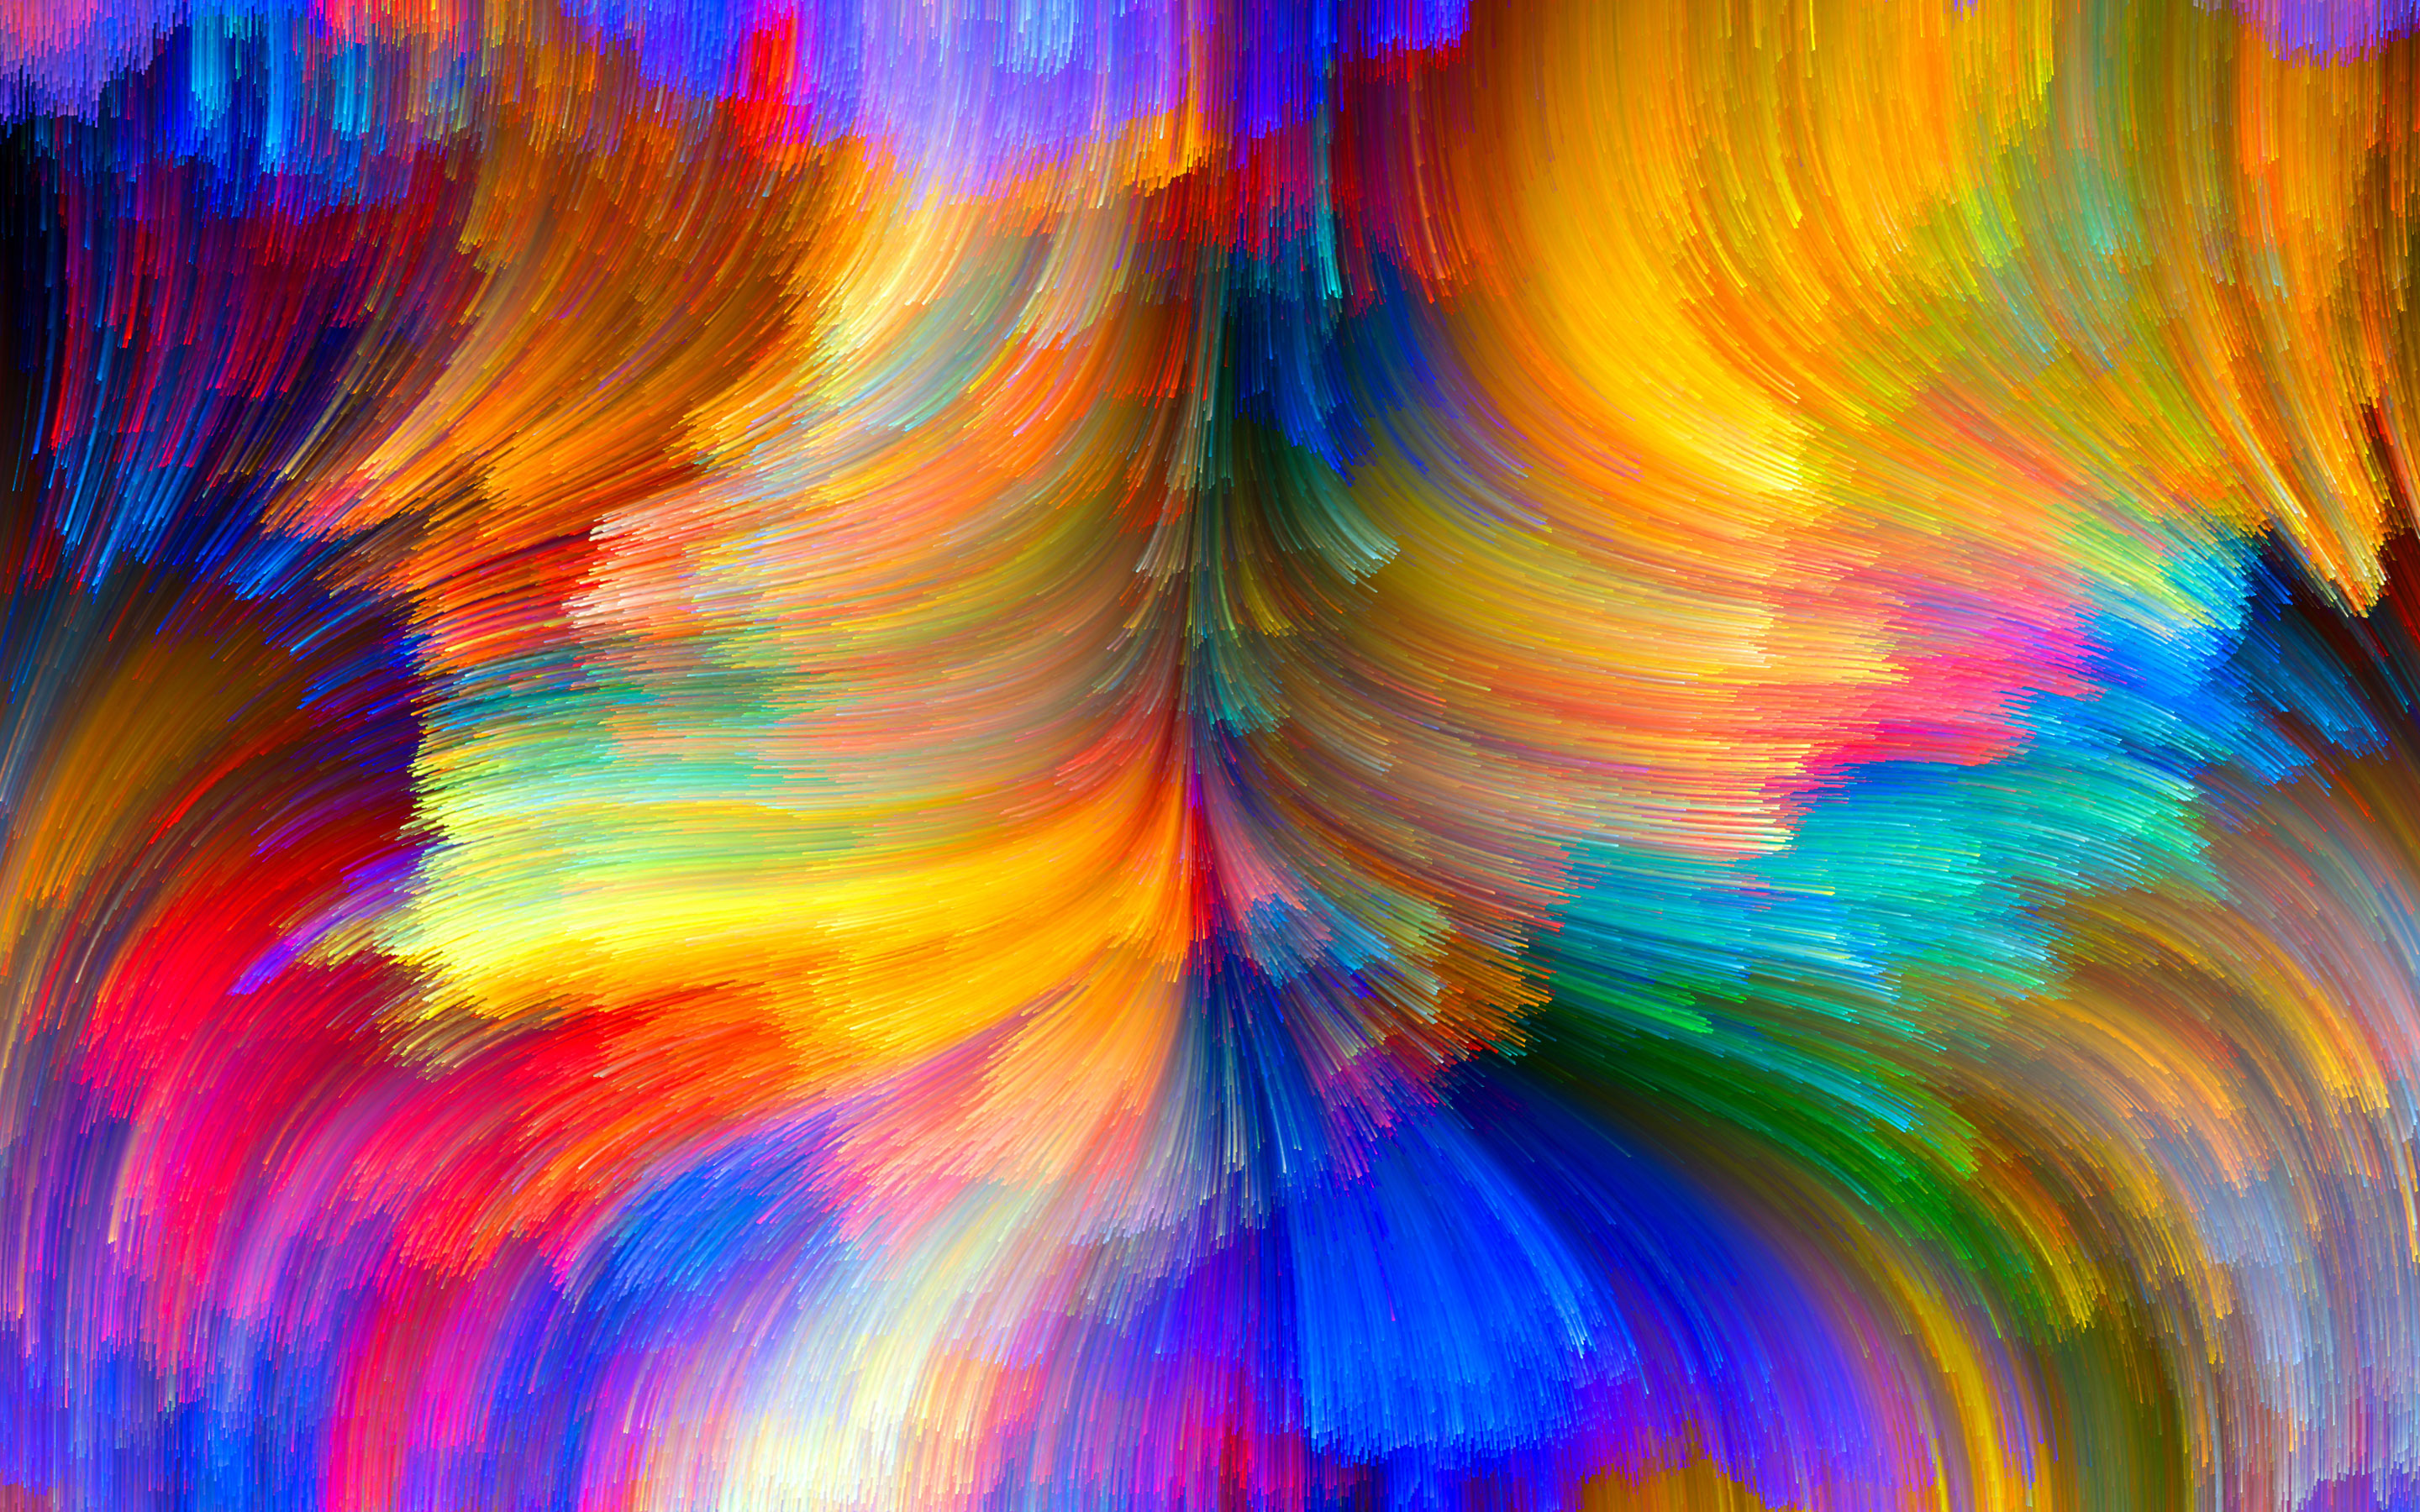 Abstract Bright Color Curves HD Wallpaper 2880x1800